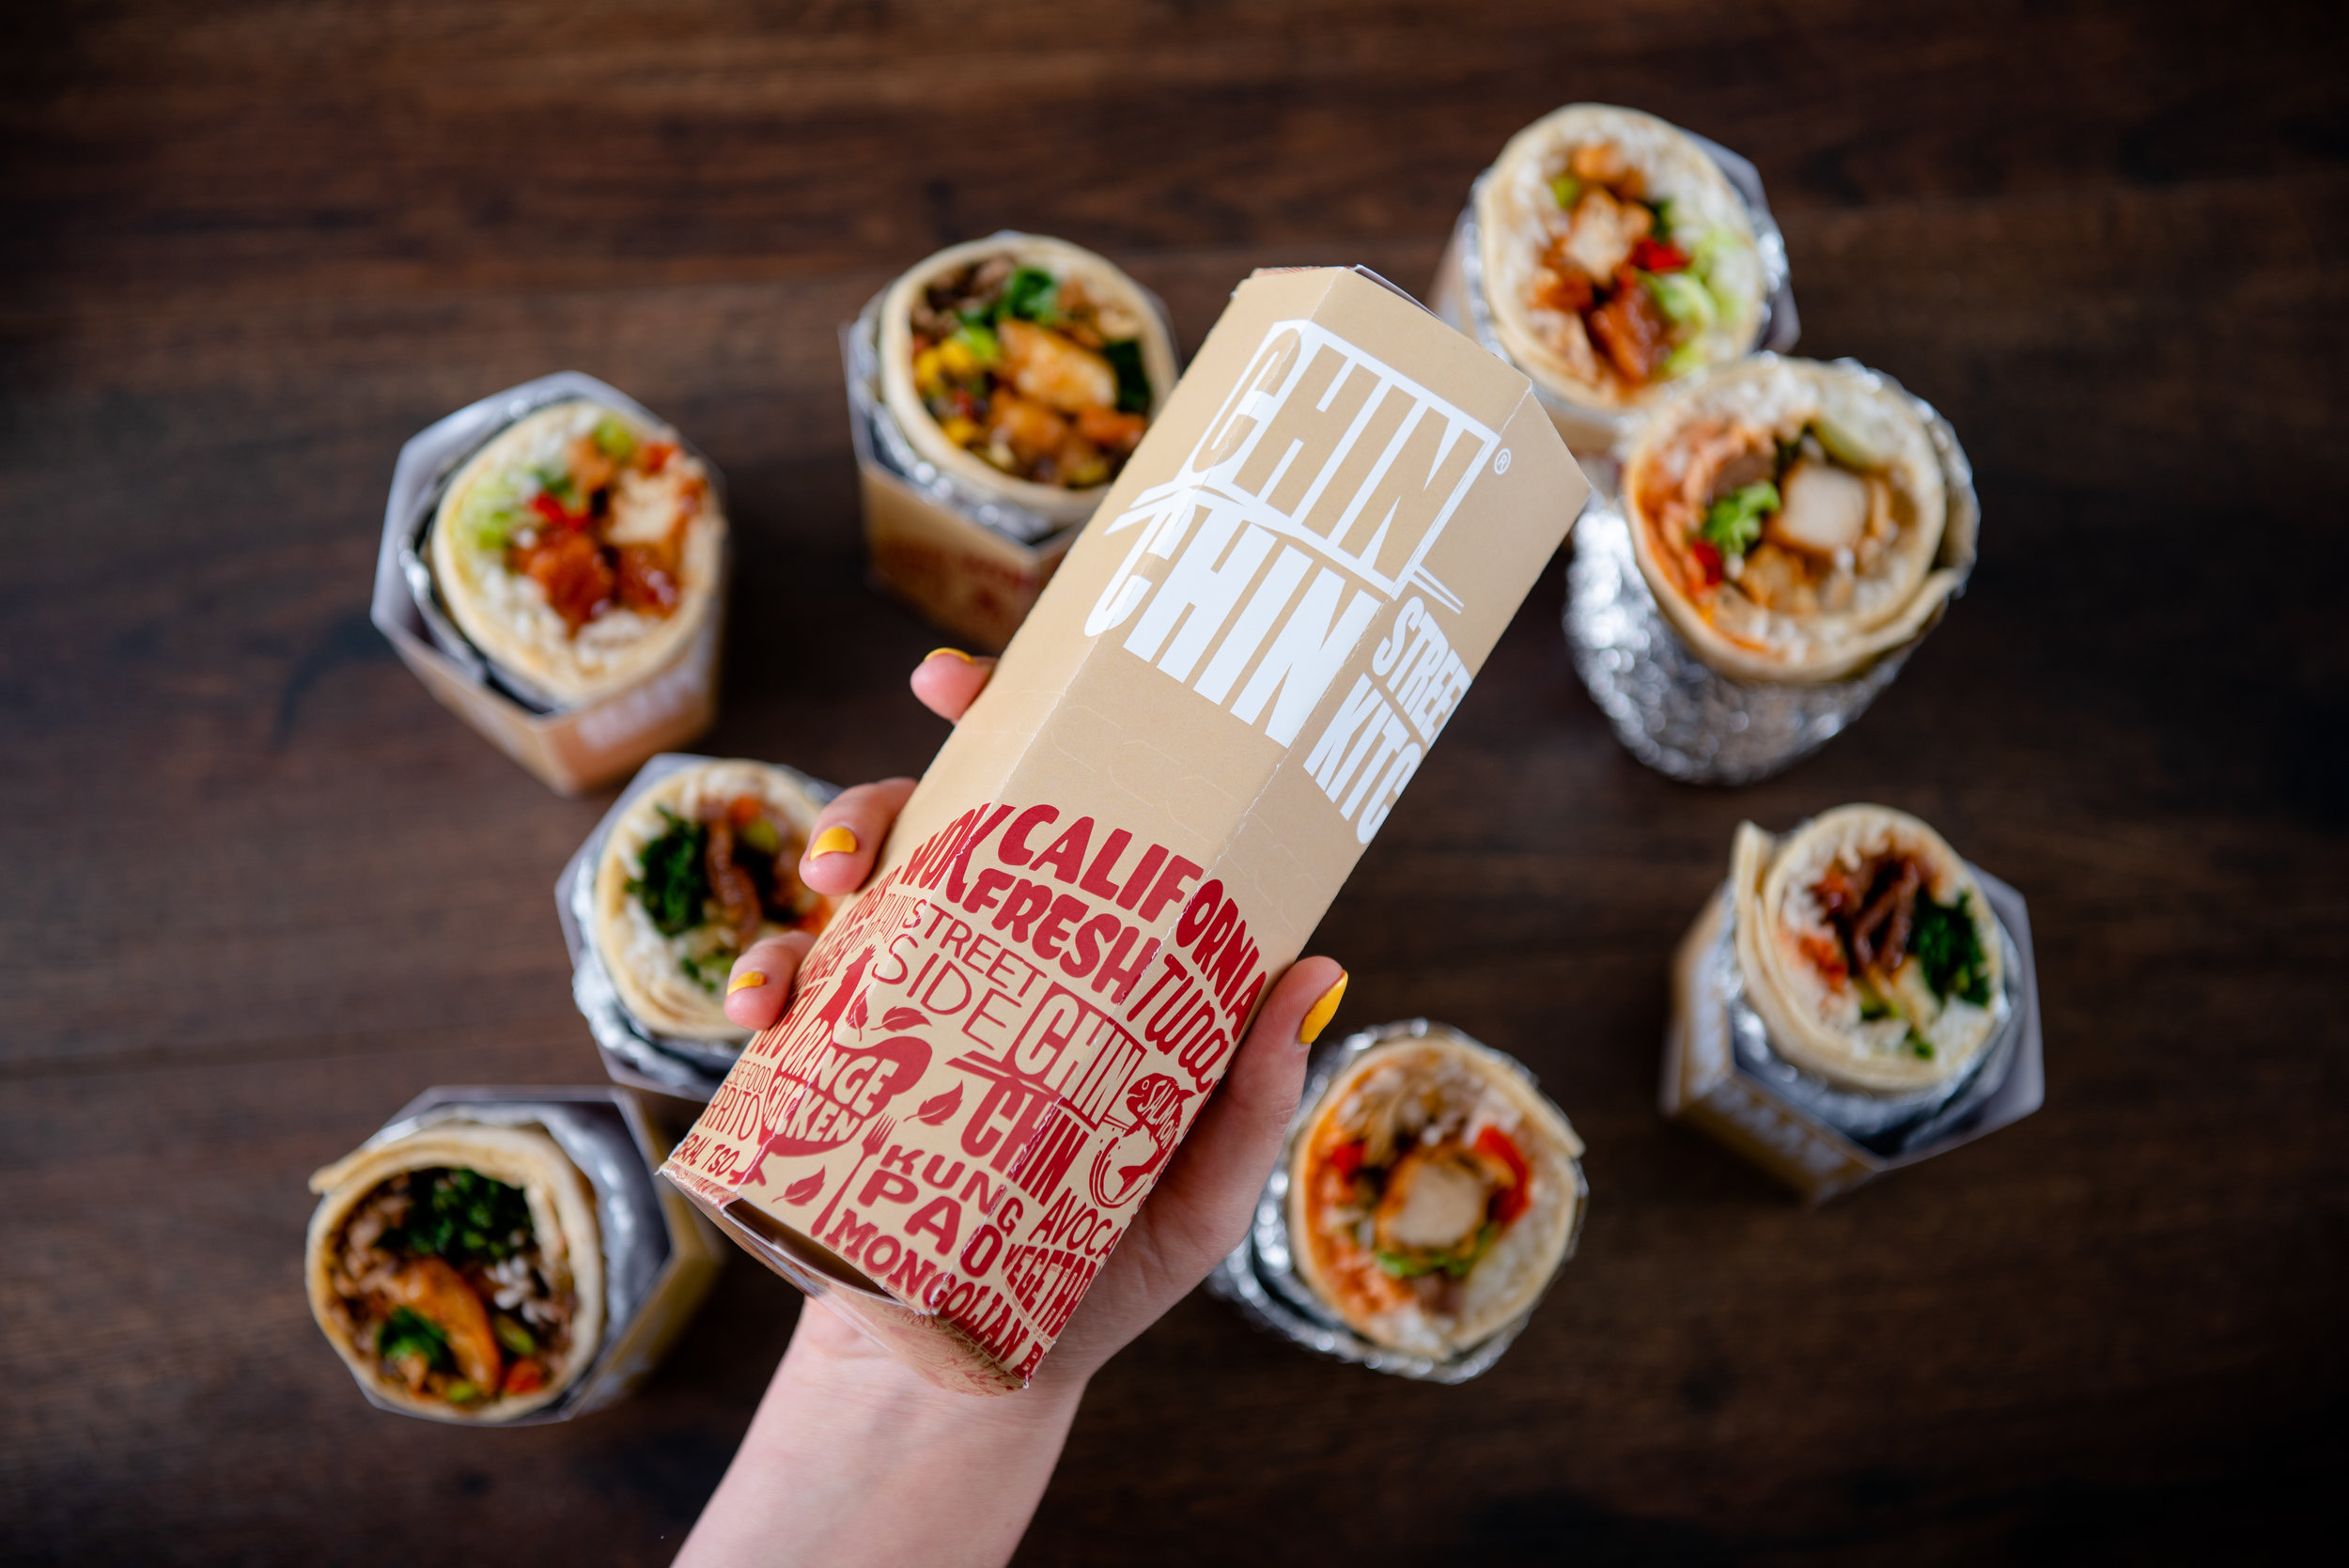 The Chin Chin Street Side Roll - our gluten-free take on a Chinese Food Burrito.